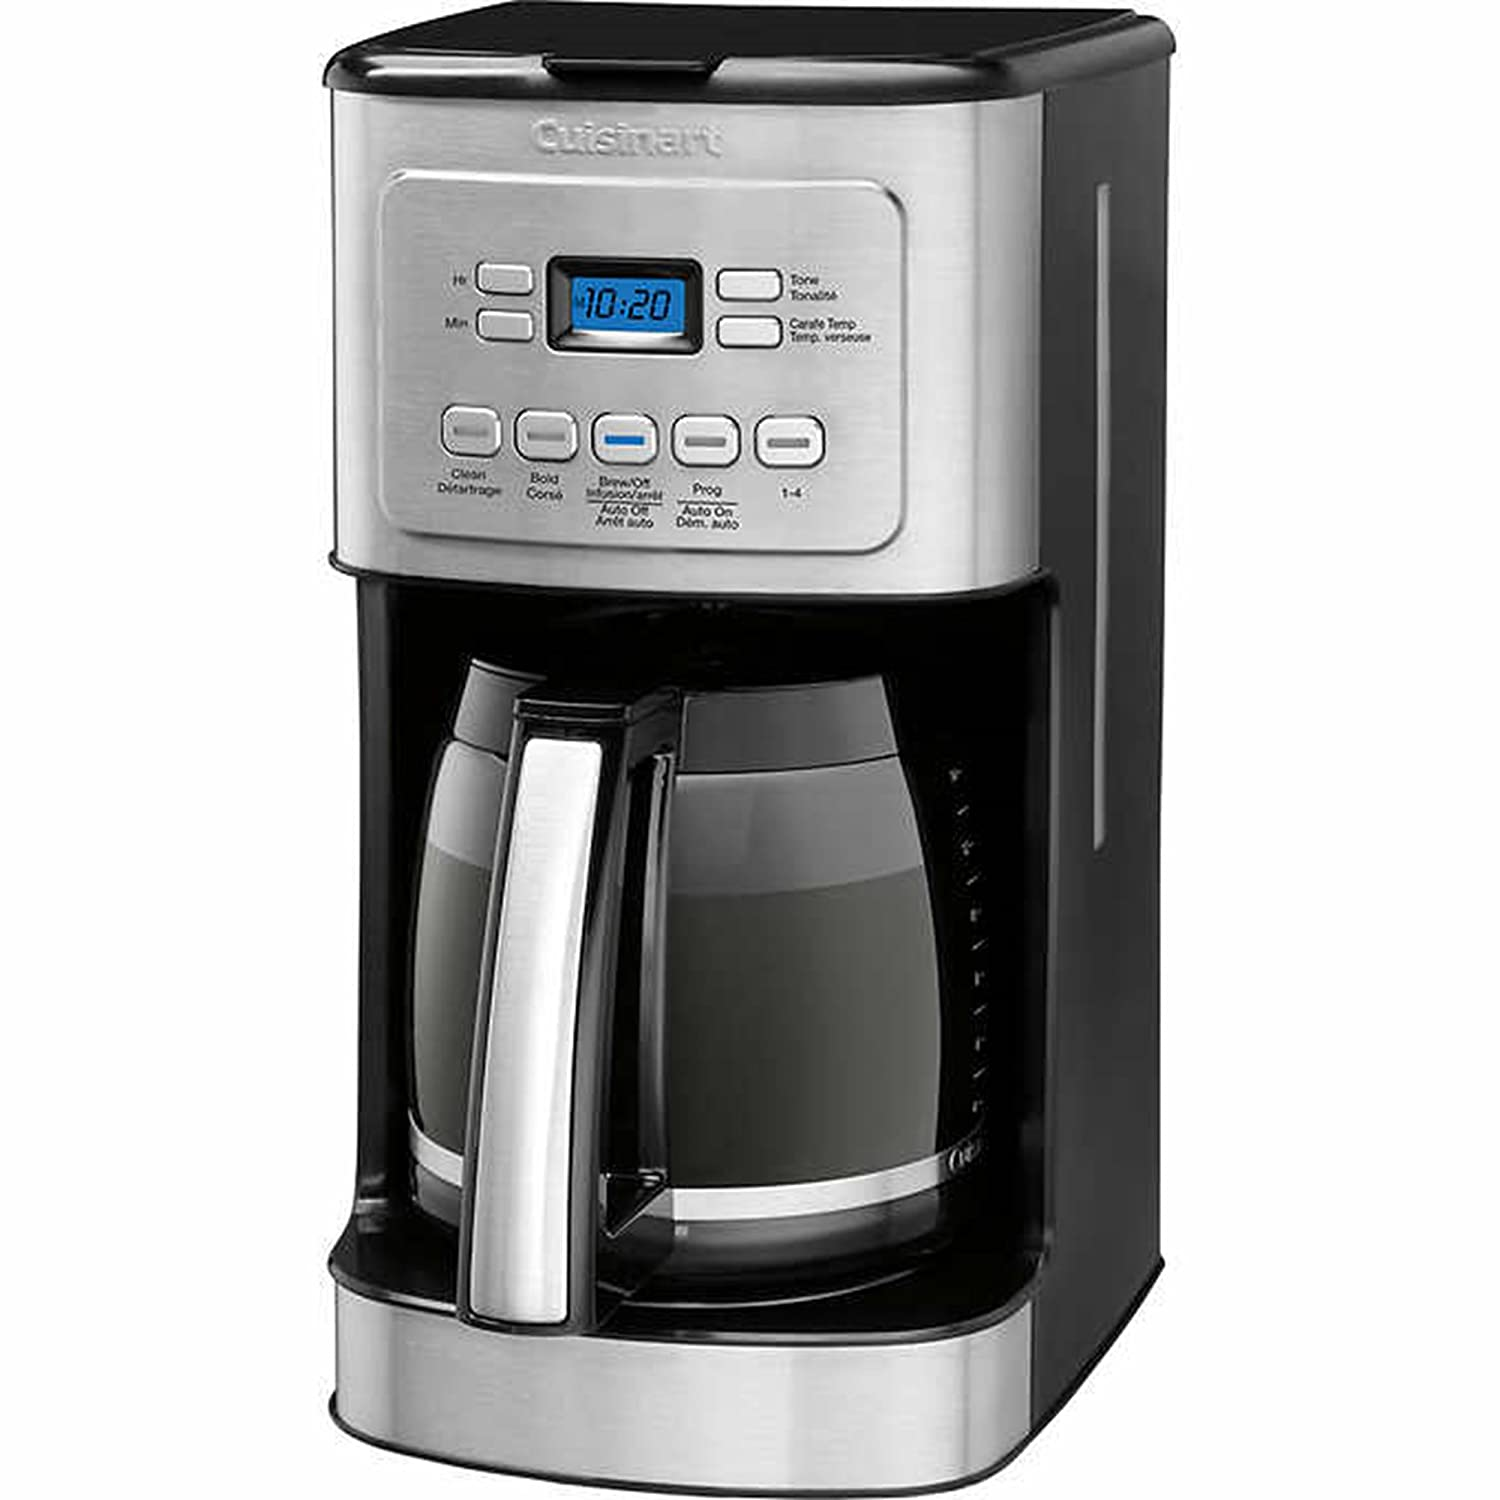 Cuisinart Stainless Steel Coffeemaker Review